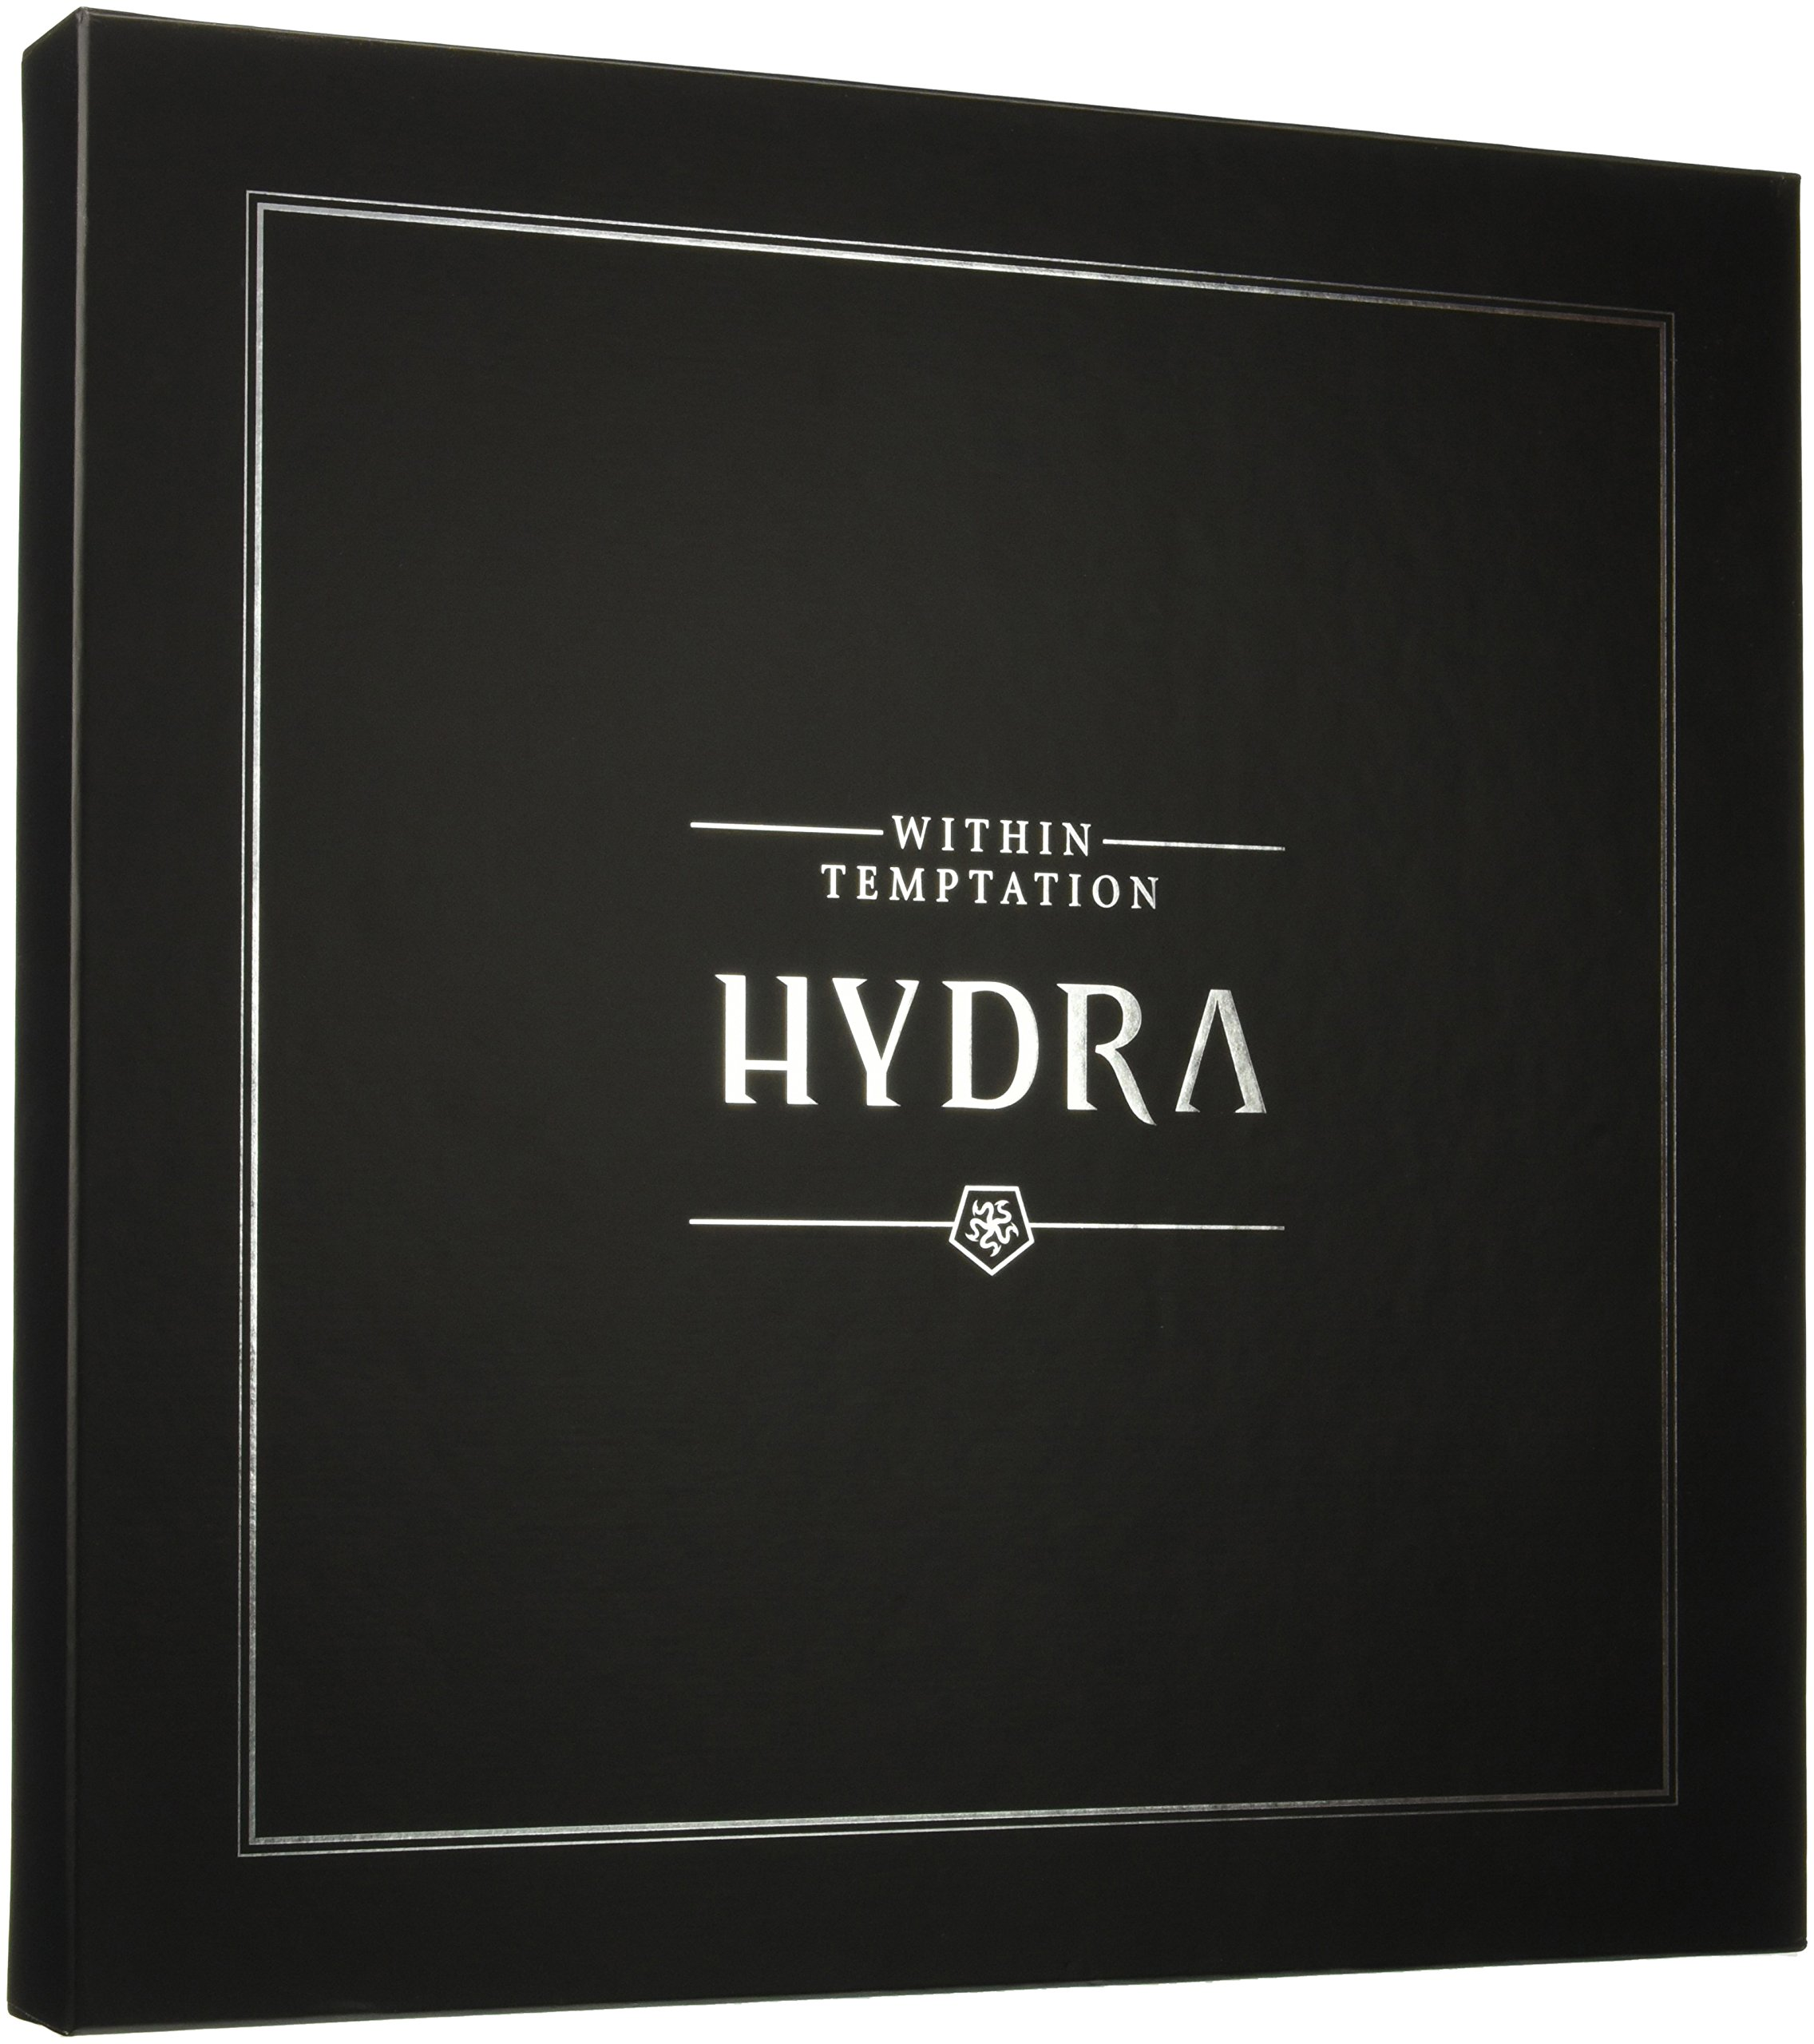 Hydra box set